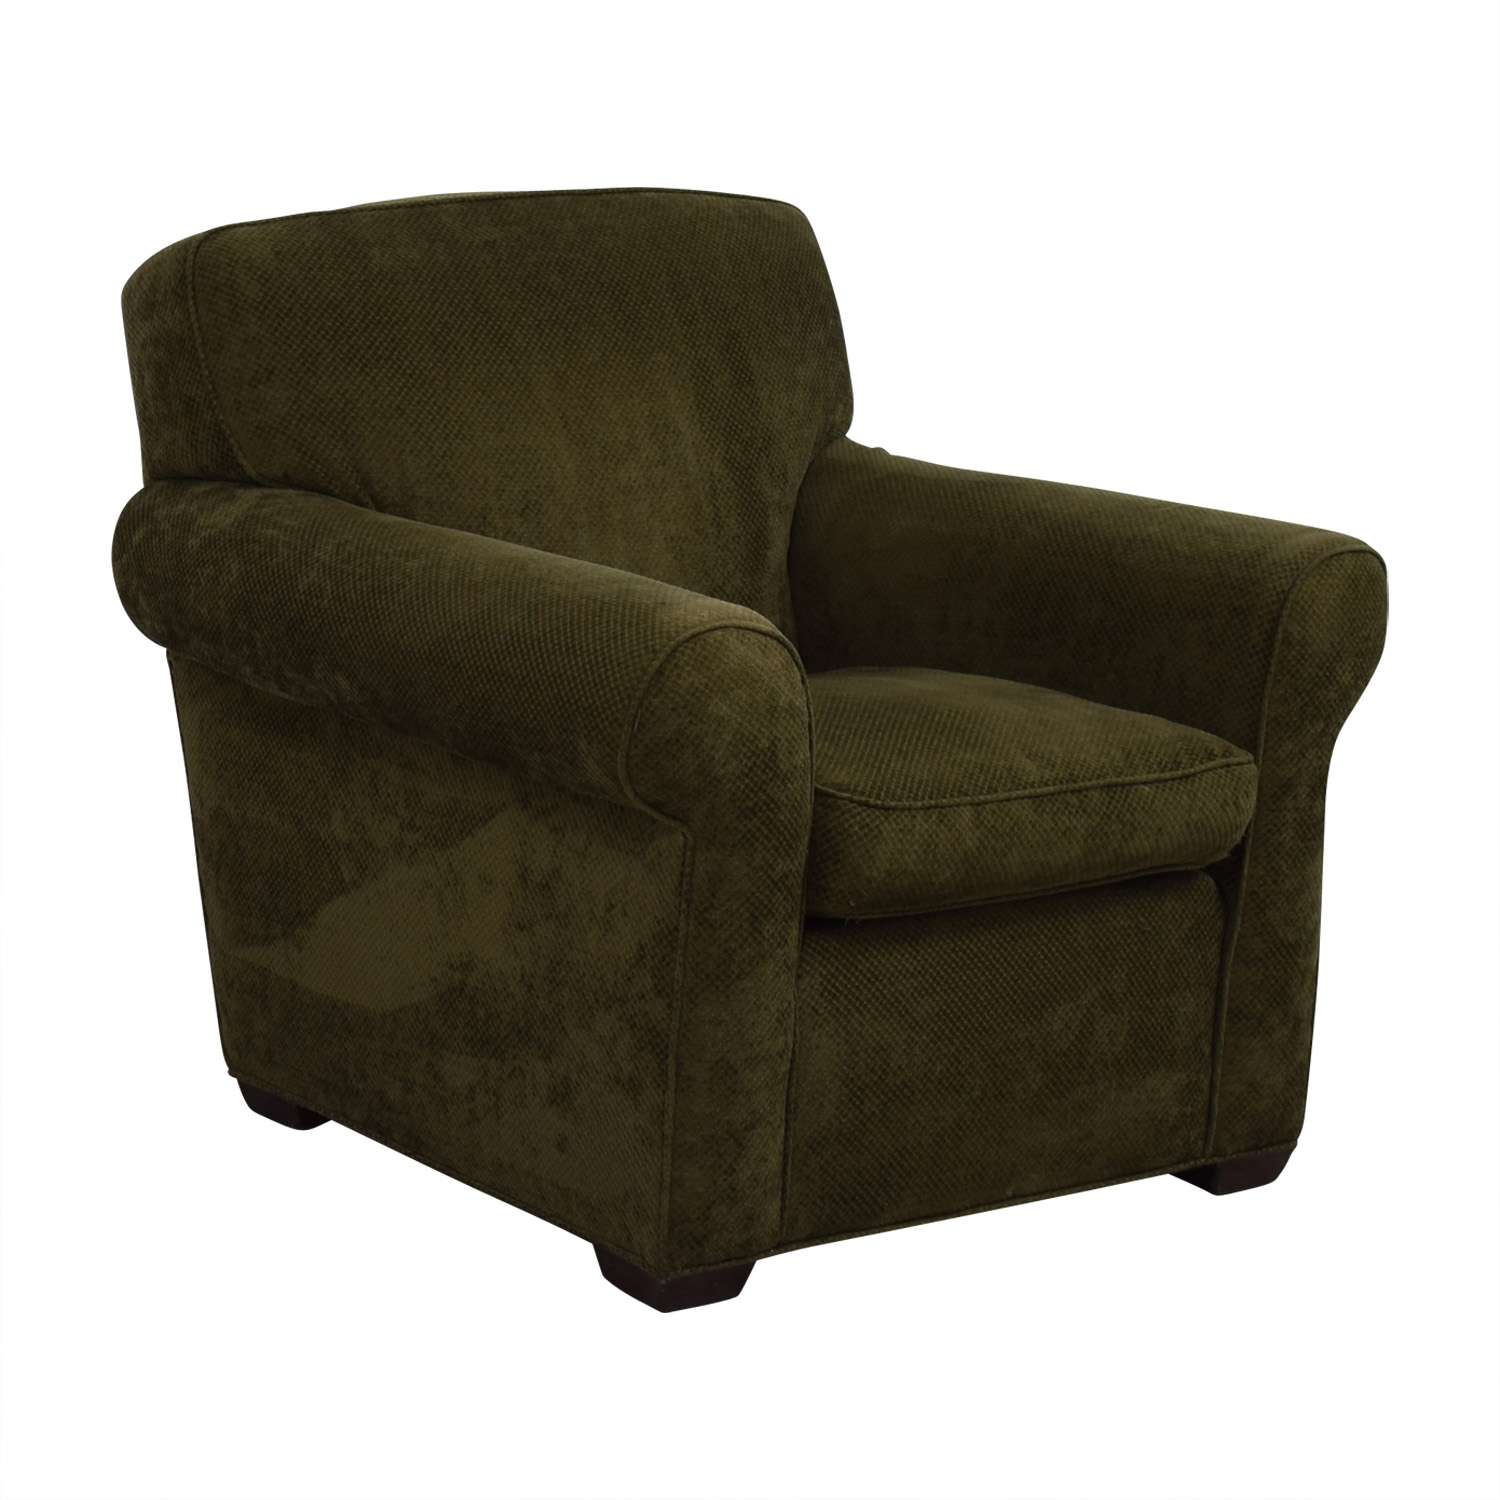 Large Accent Chairs 90 Off Large Olive Green Accent Chair Chairs